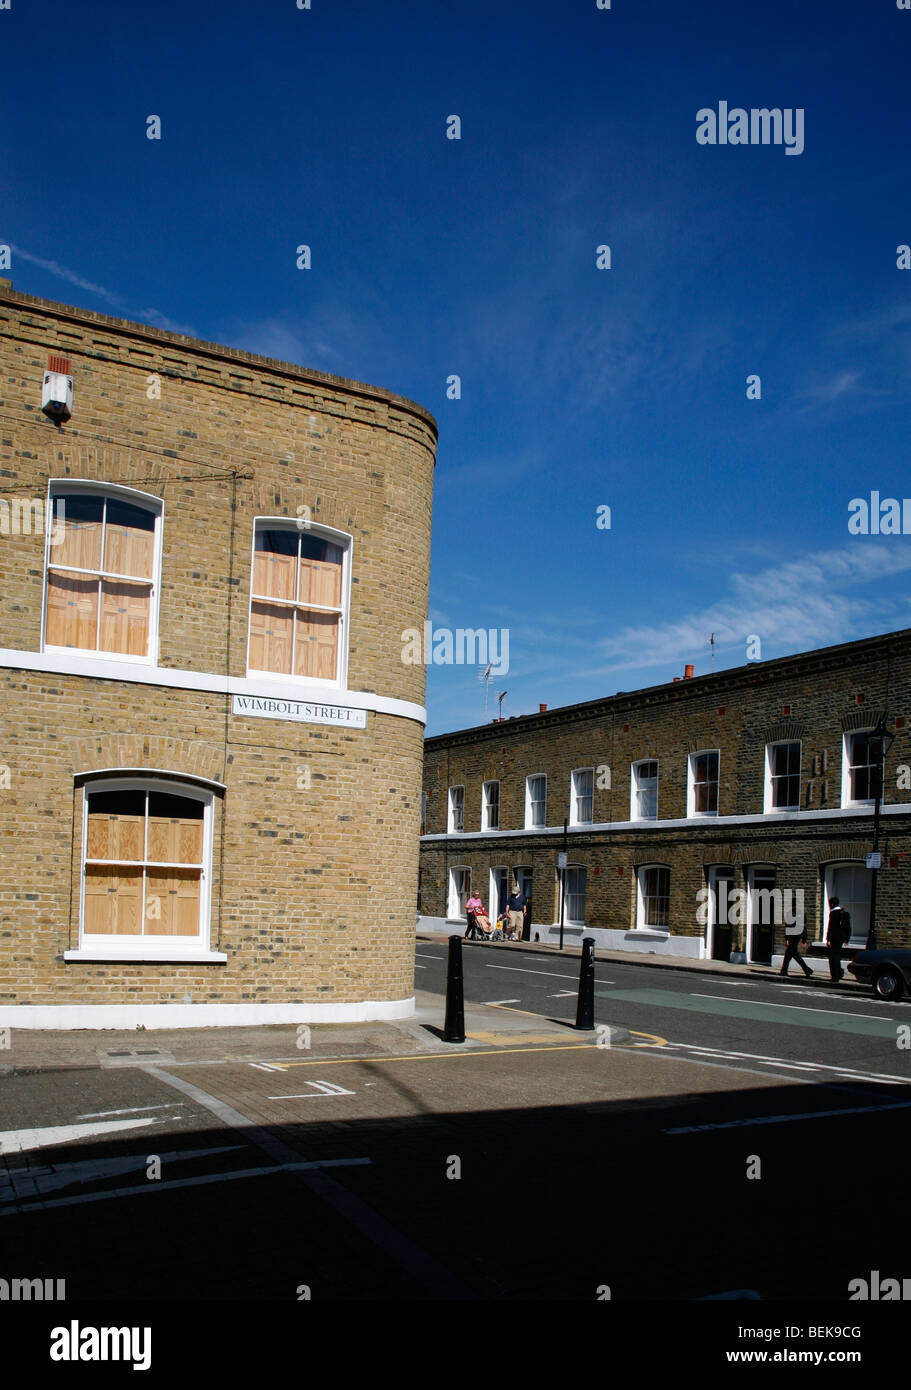 Junction of Wimbolt Street and Durand Street, Bethnal Green, London, UK - Stock Image